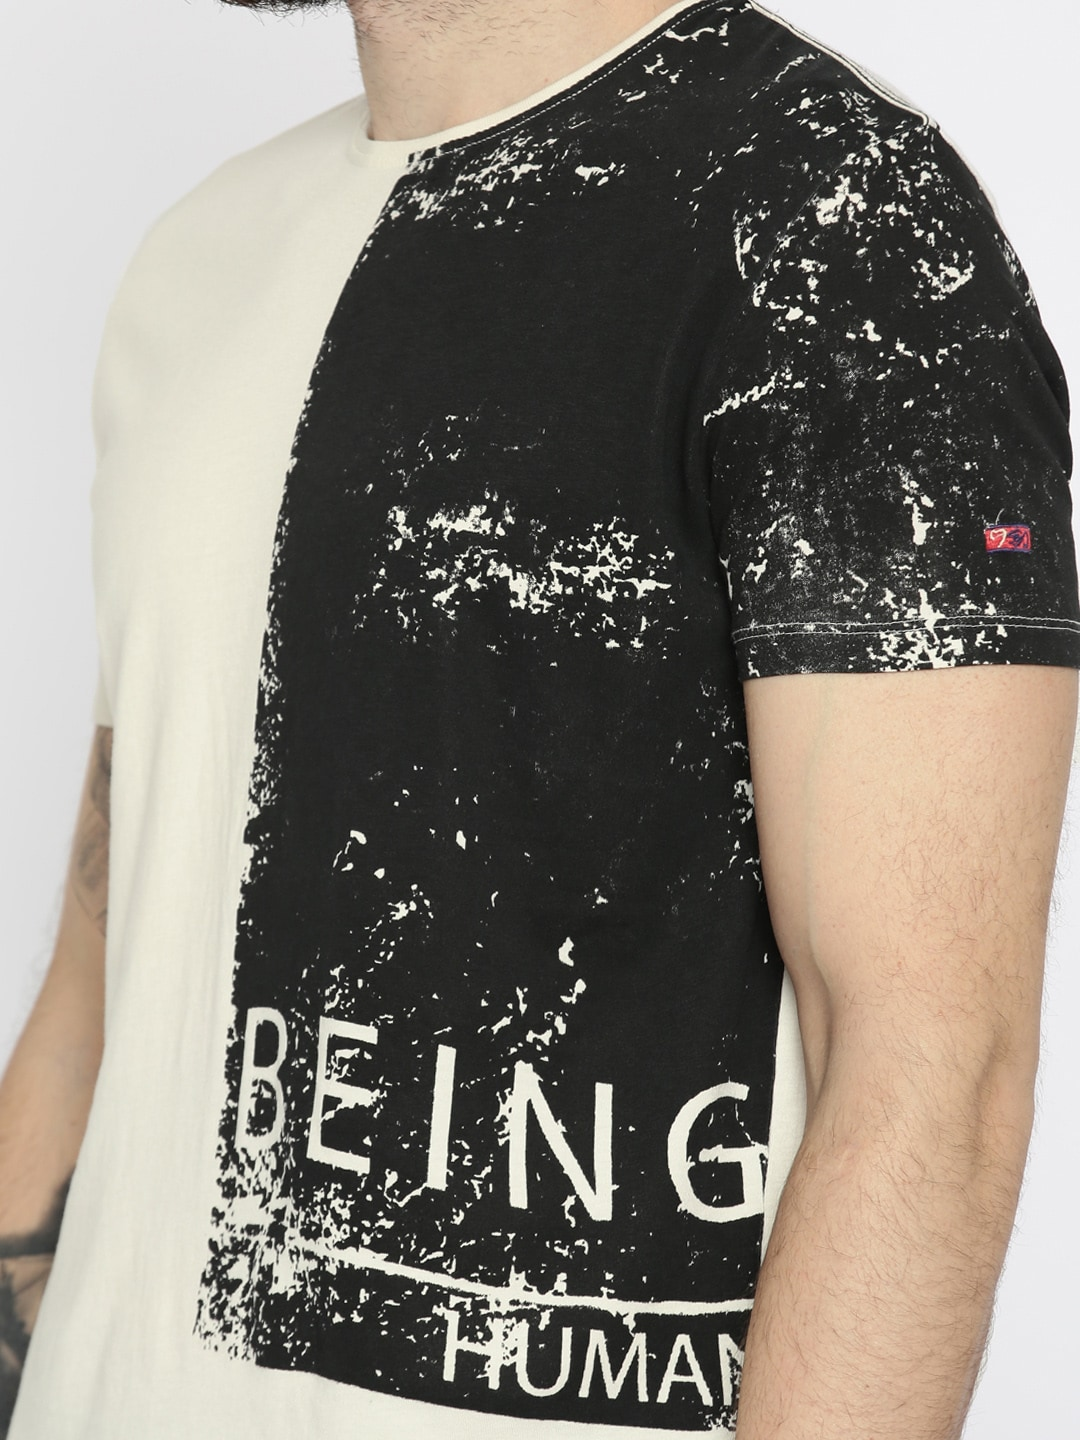 Design your own t shirt india cash on delivery - Design Your Own T Shirt India Cash On Delivery 30